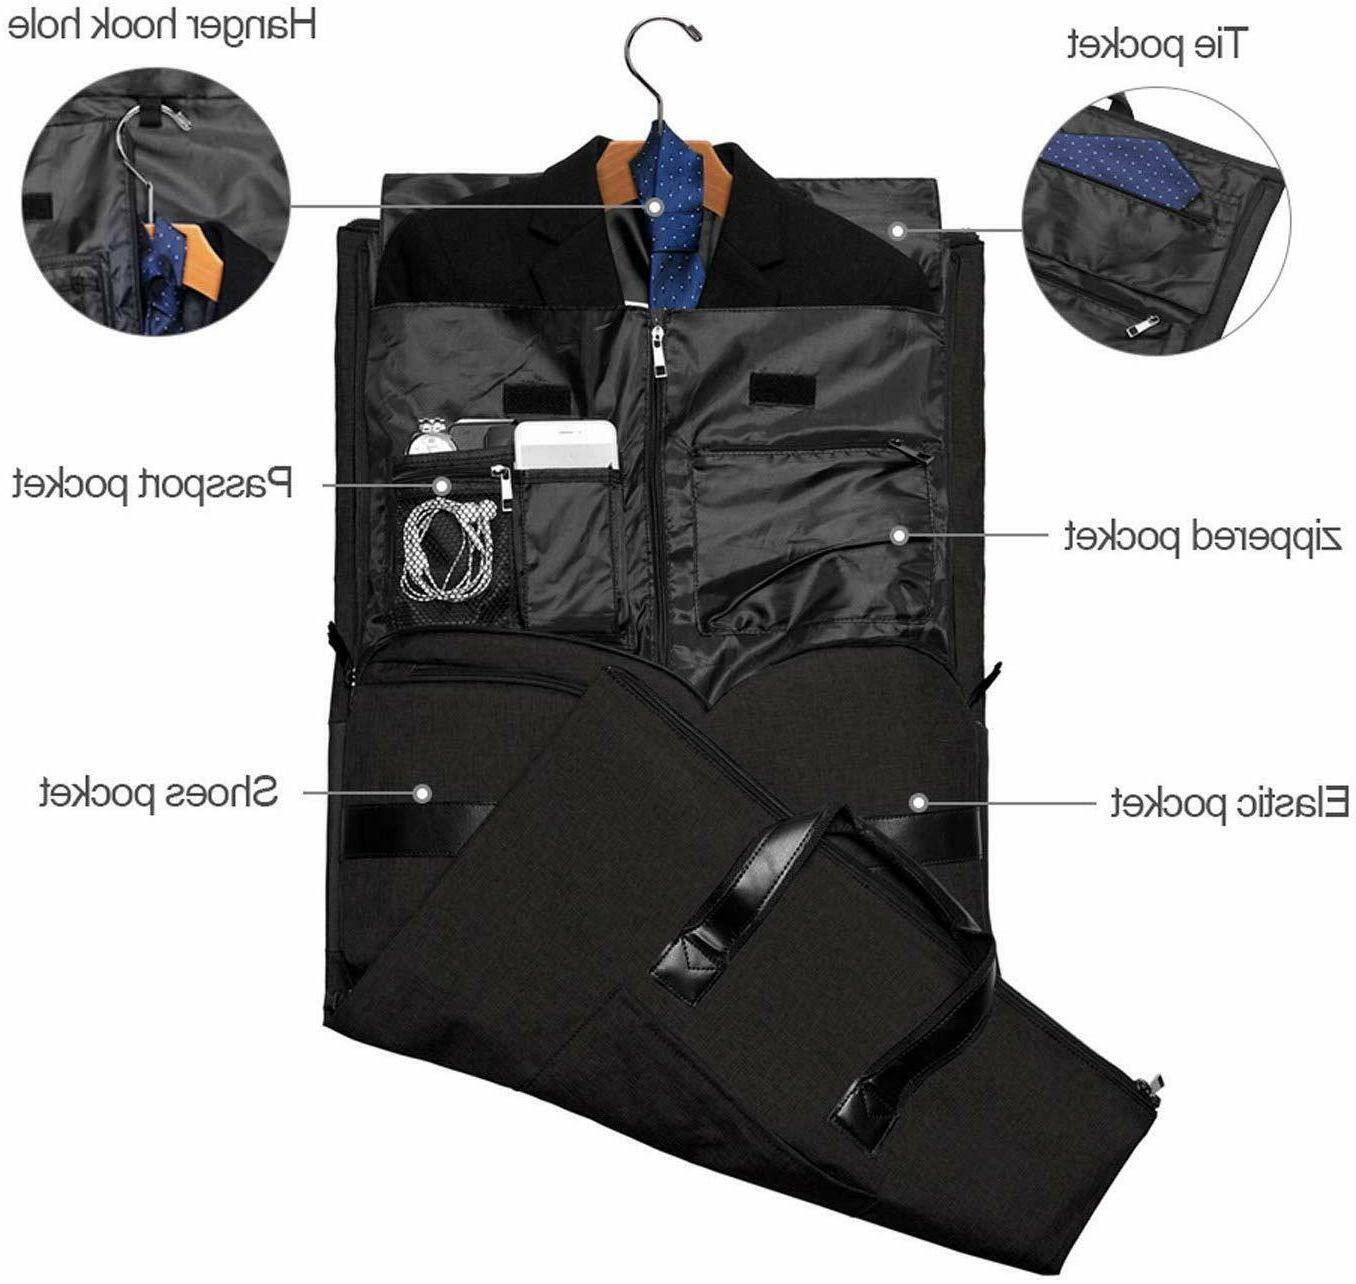 20 Inch Bag with Suits and Shoes Compartment -